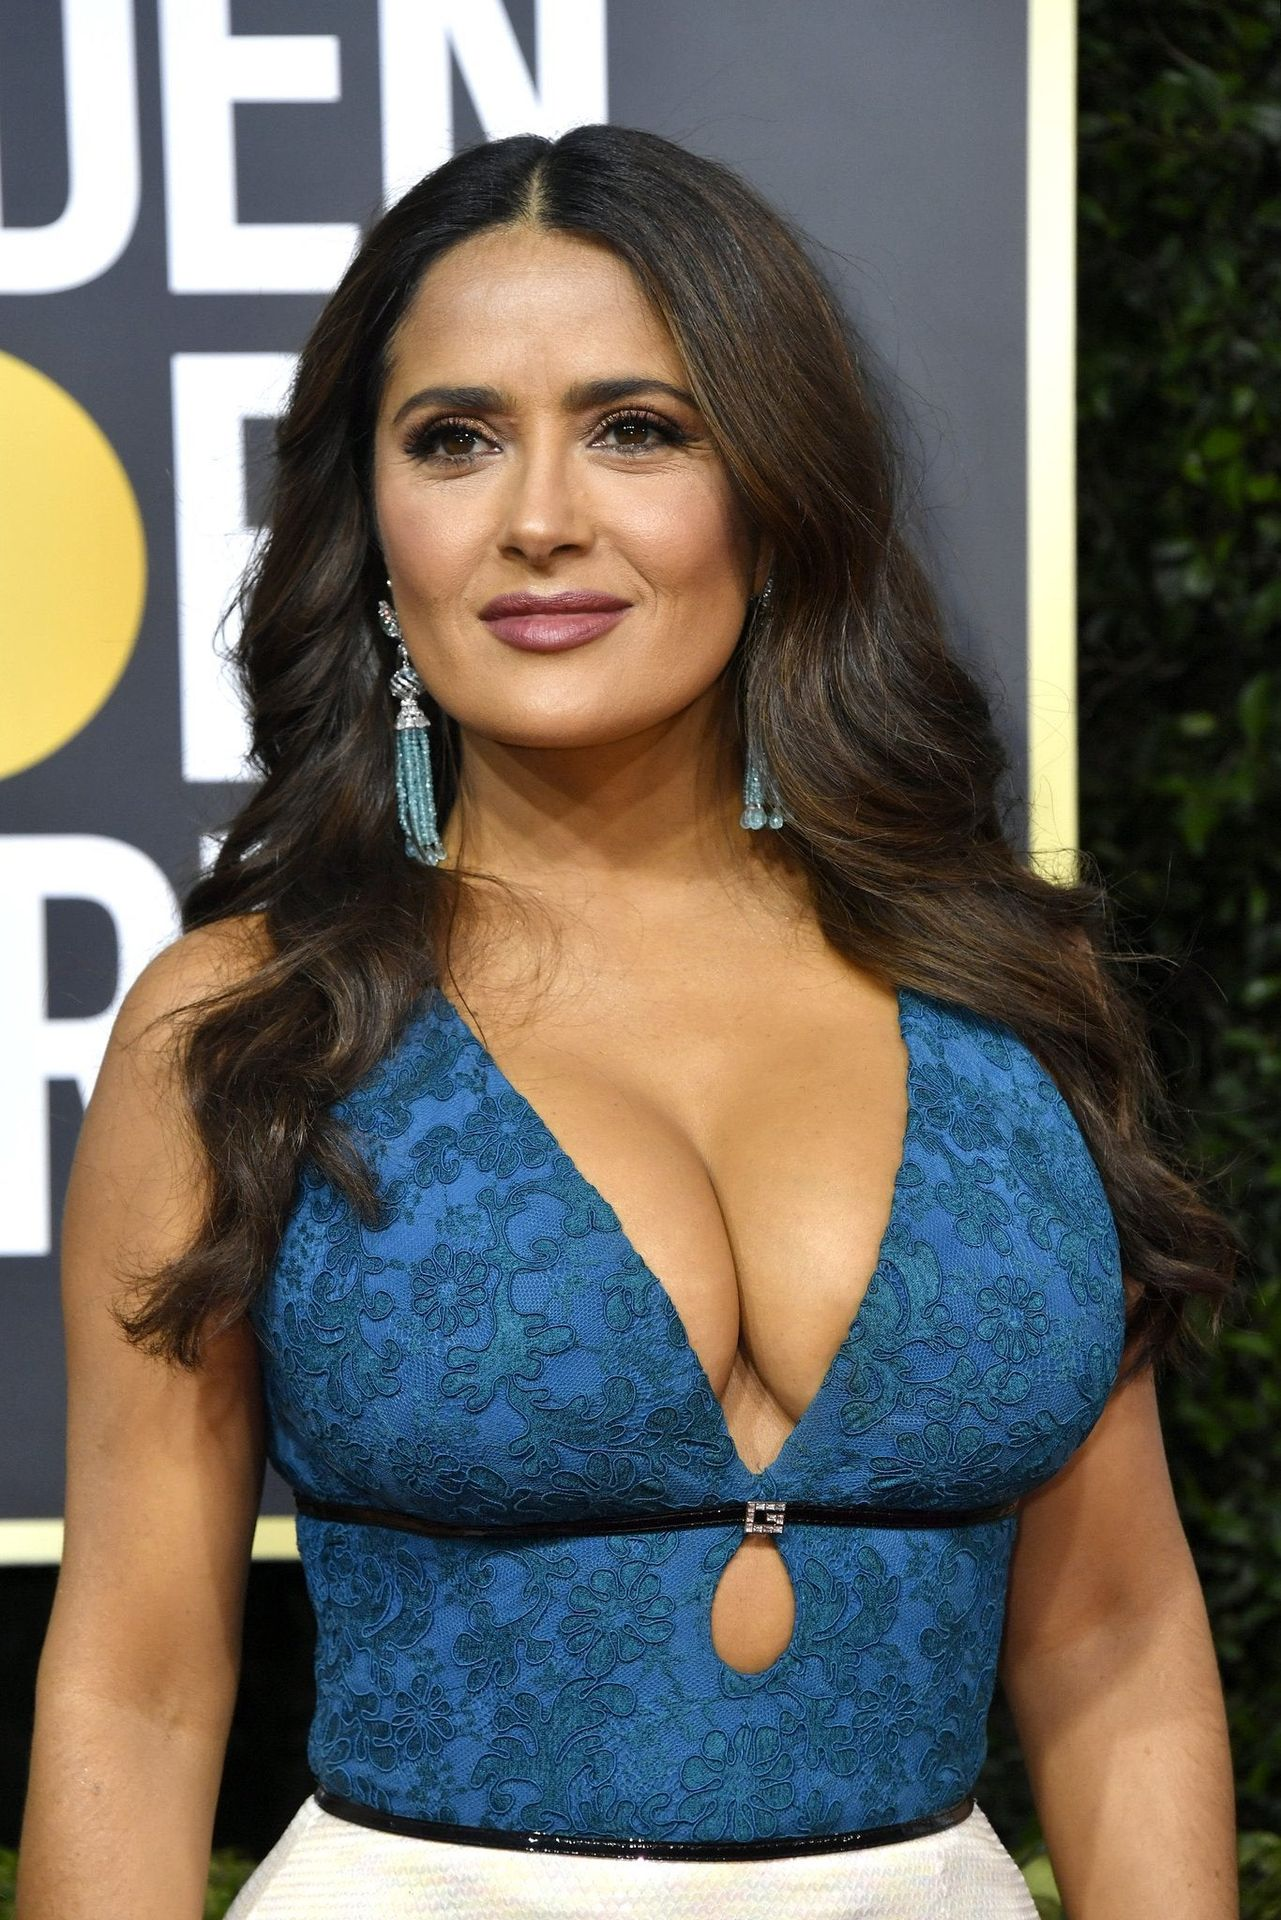 Naked Pictures Of Salma Hayek photo 13